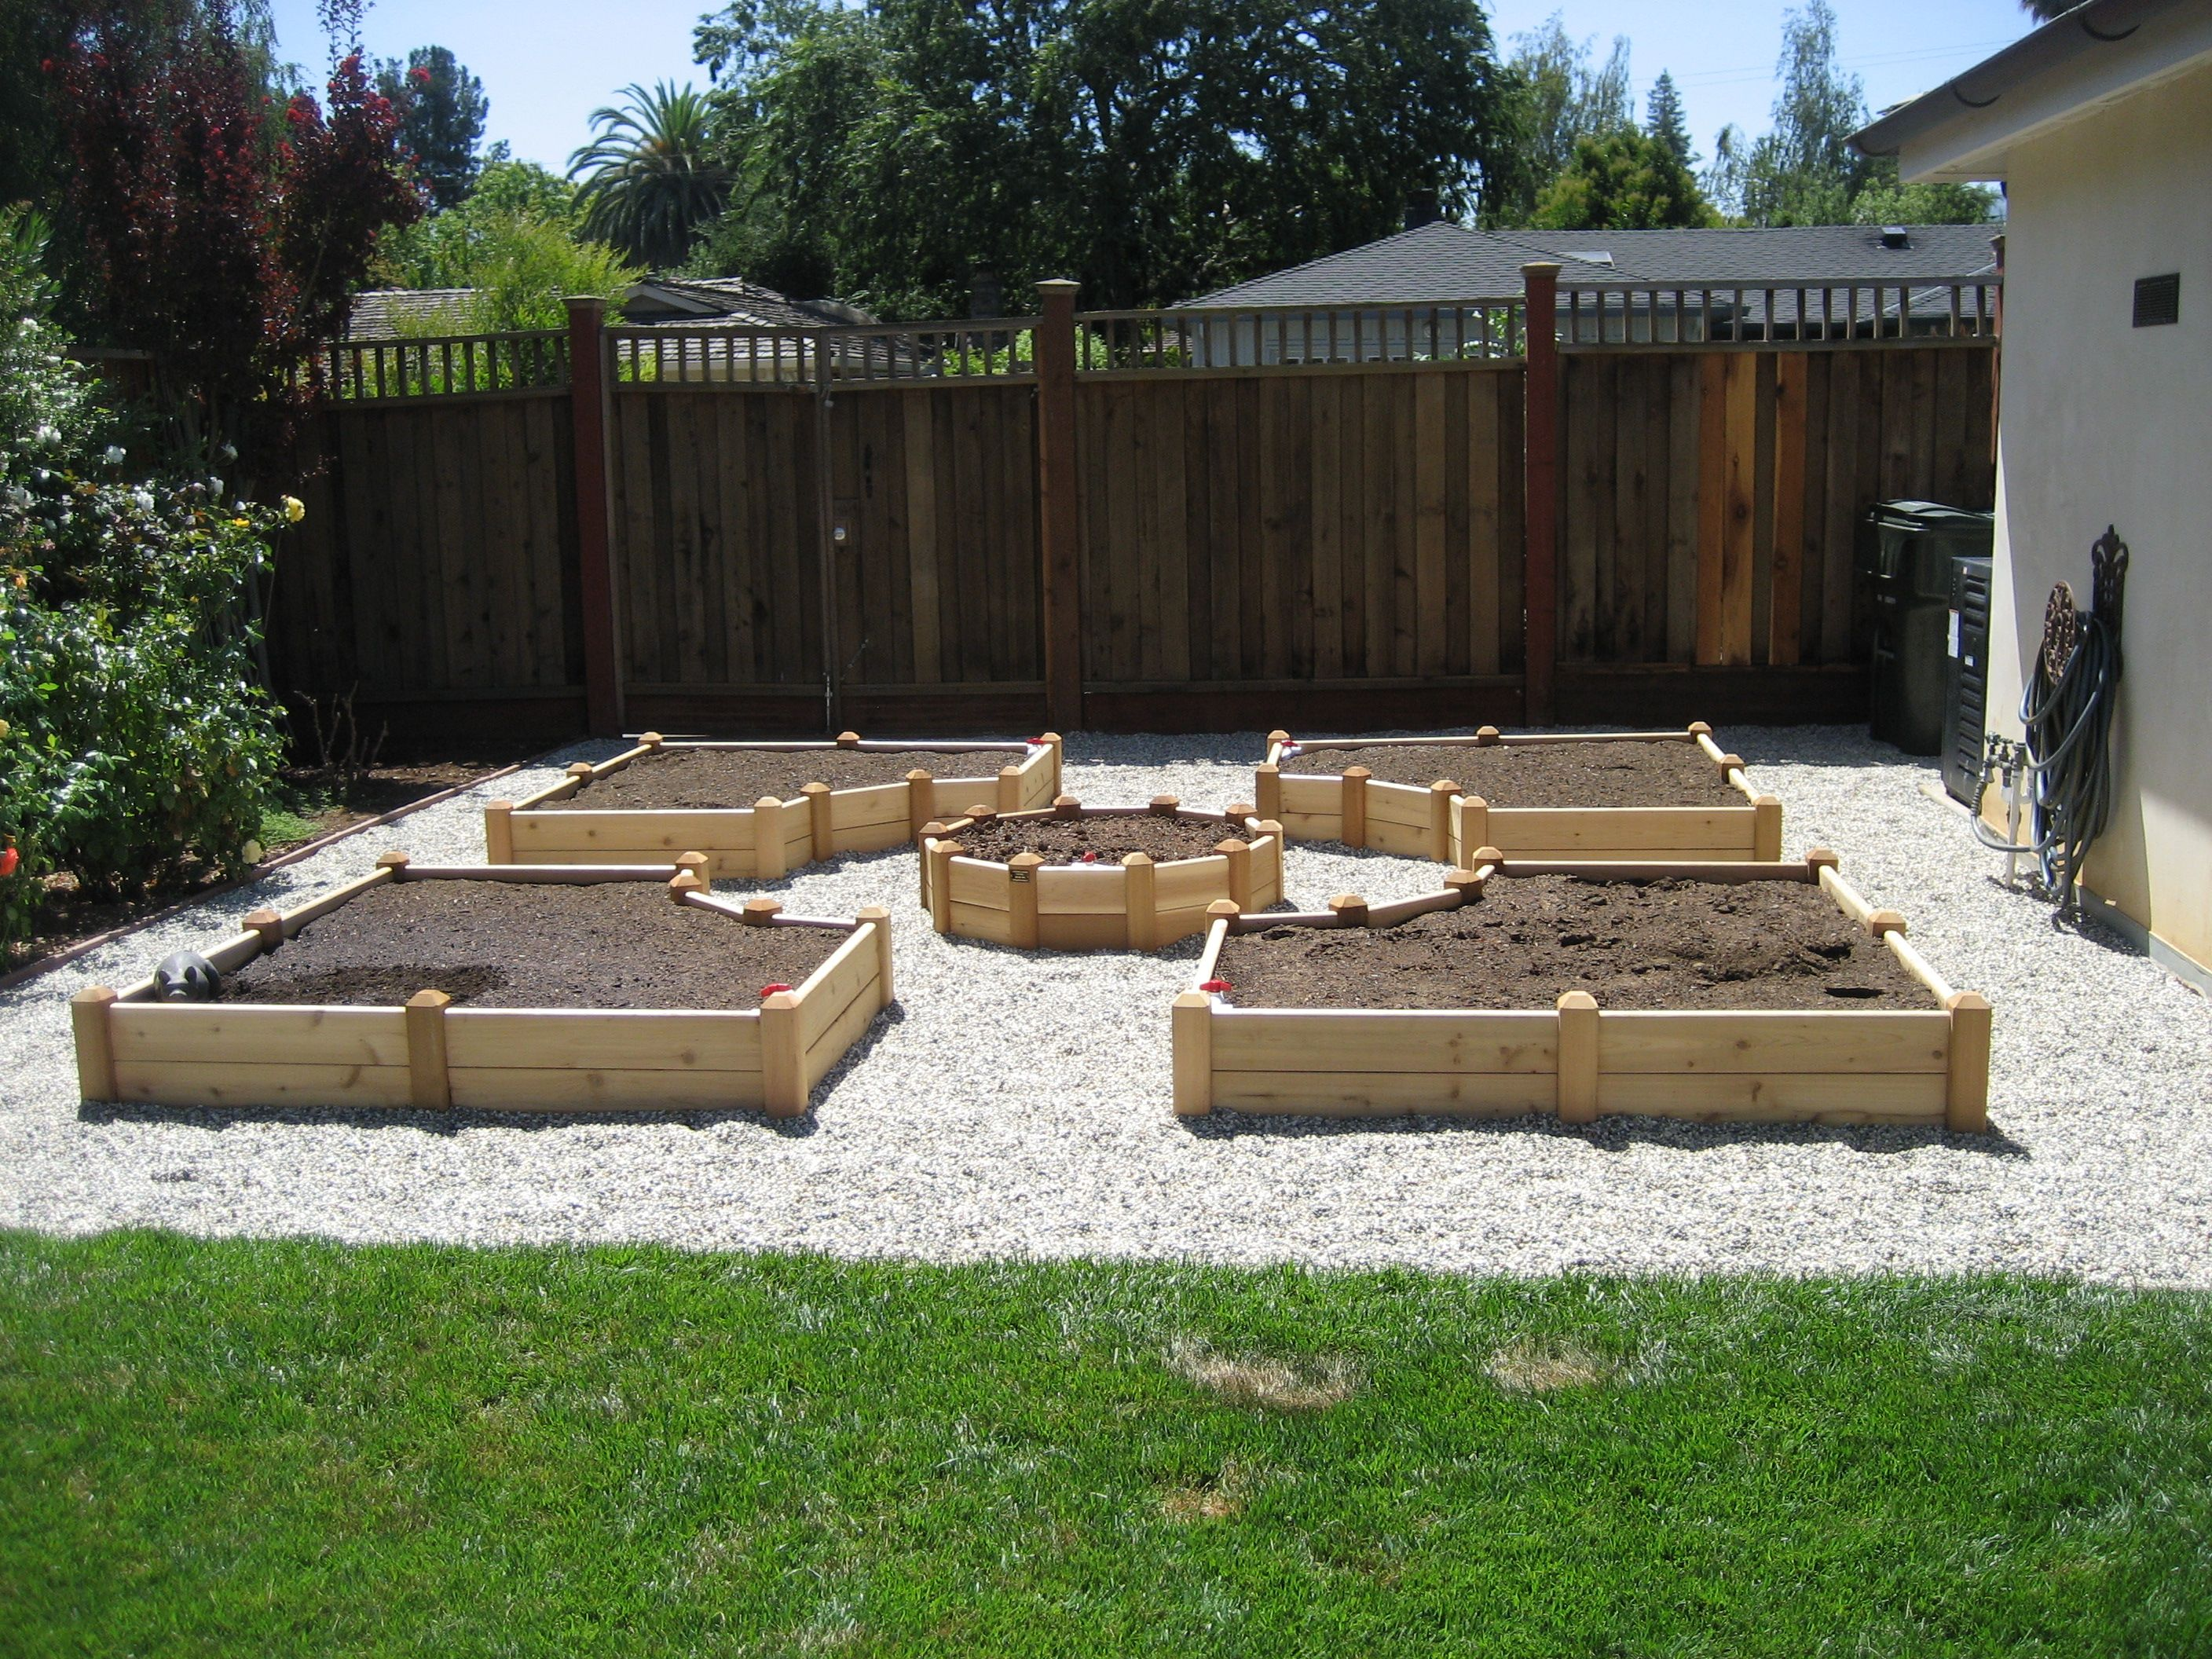 Ordinaire Cool Design For Raised Bed Garden And Raised Bed Herb Garden .